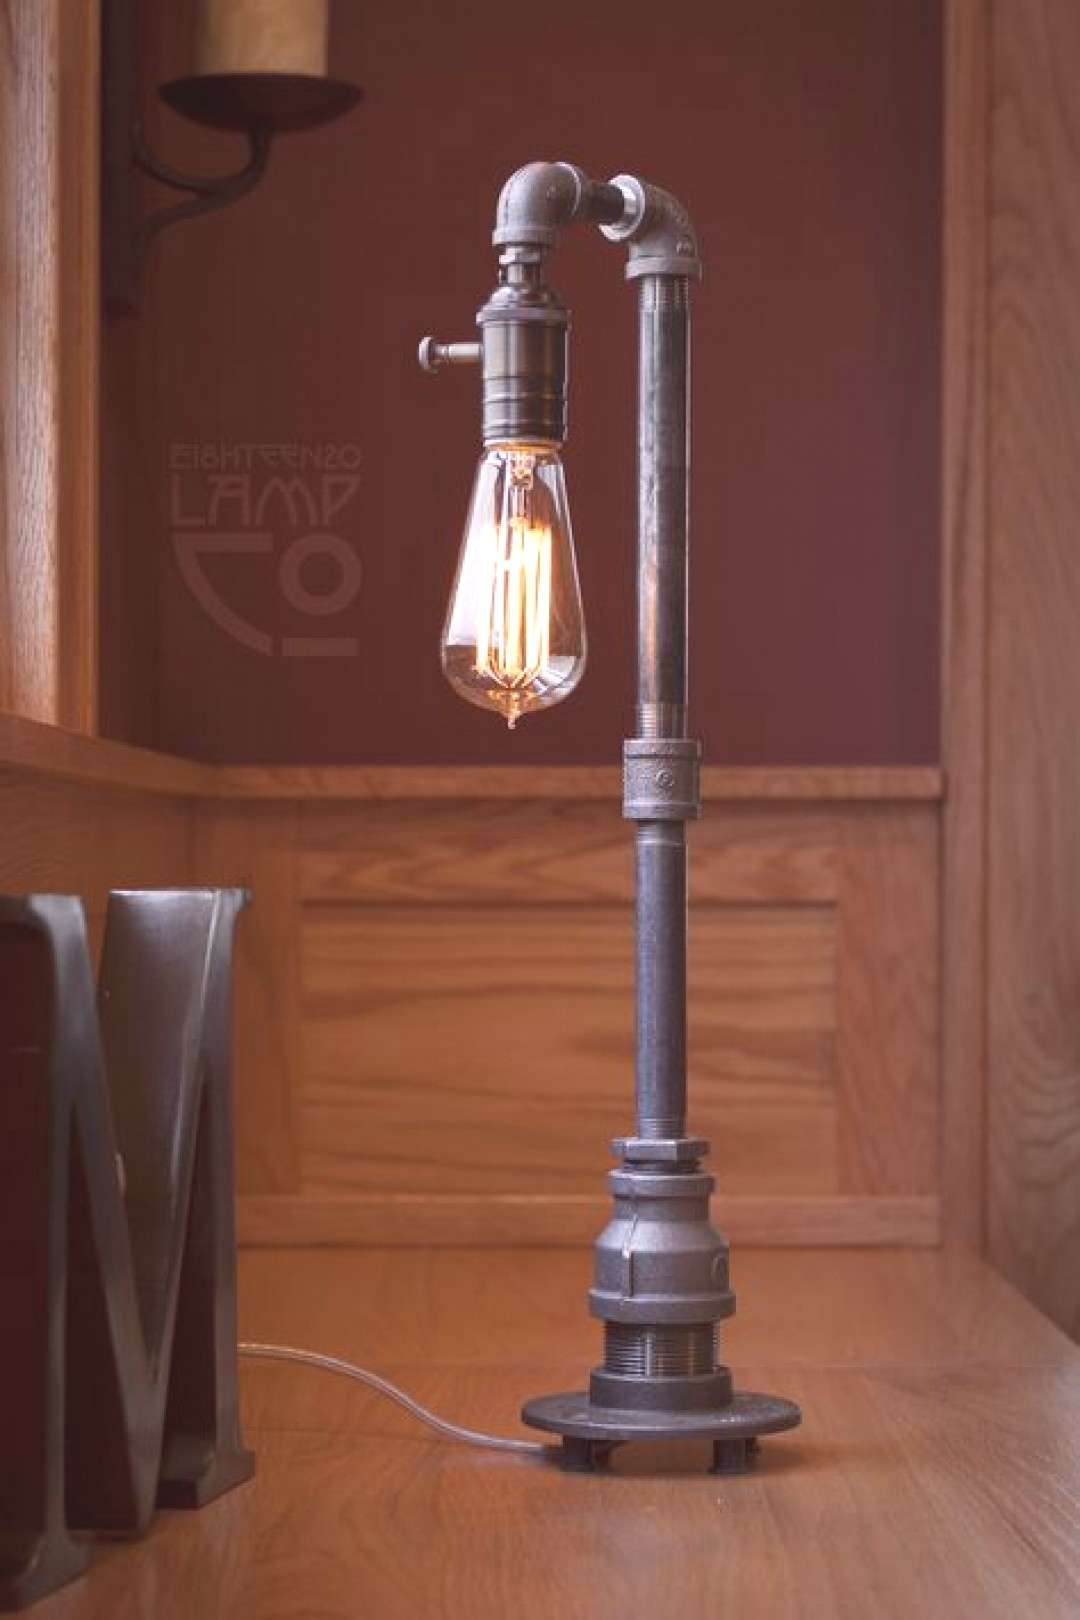 At the Ei8hteen20 Lamp Co., we handcraft odd little lamp creations from industrial pipe, fabric, me